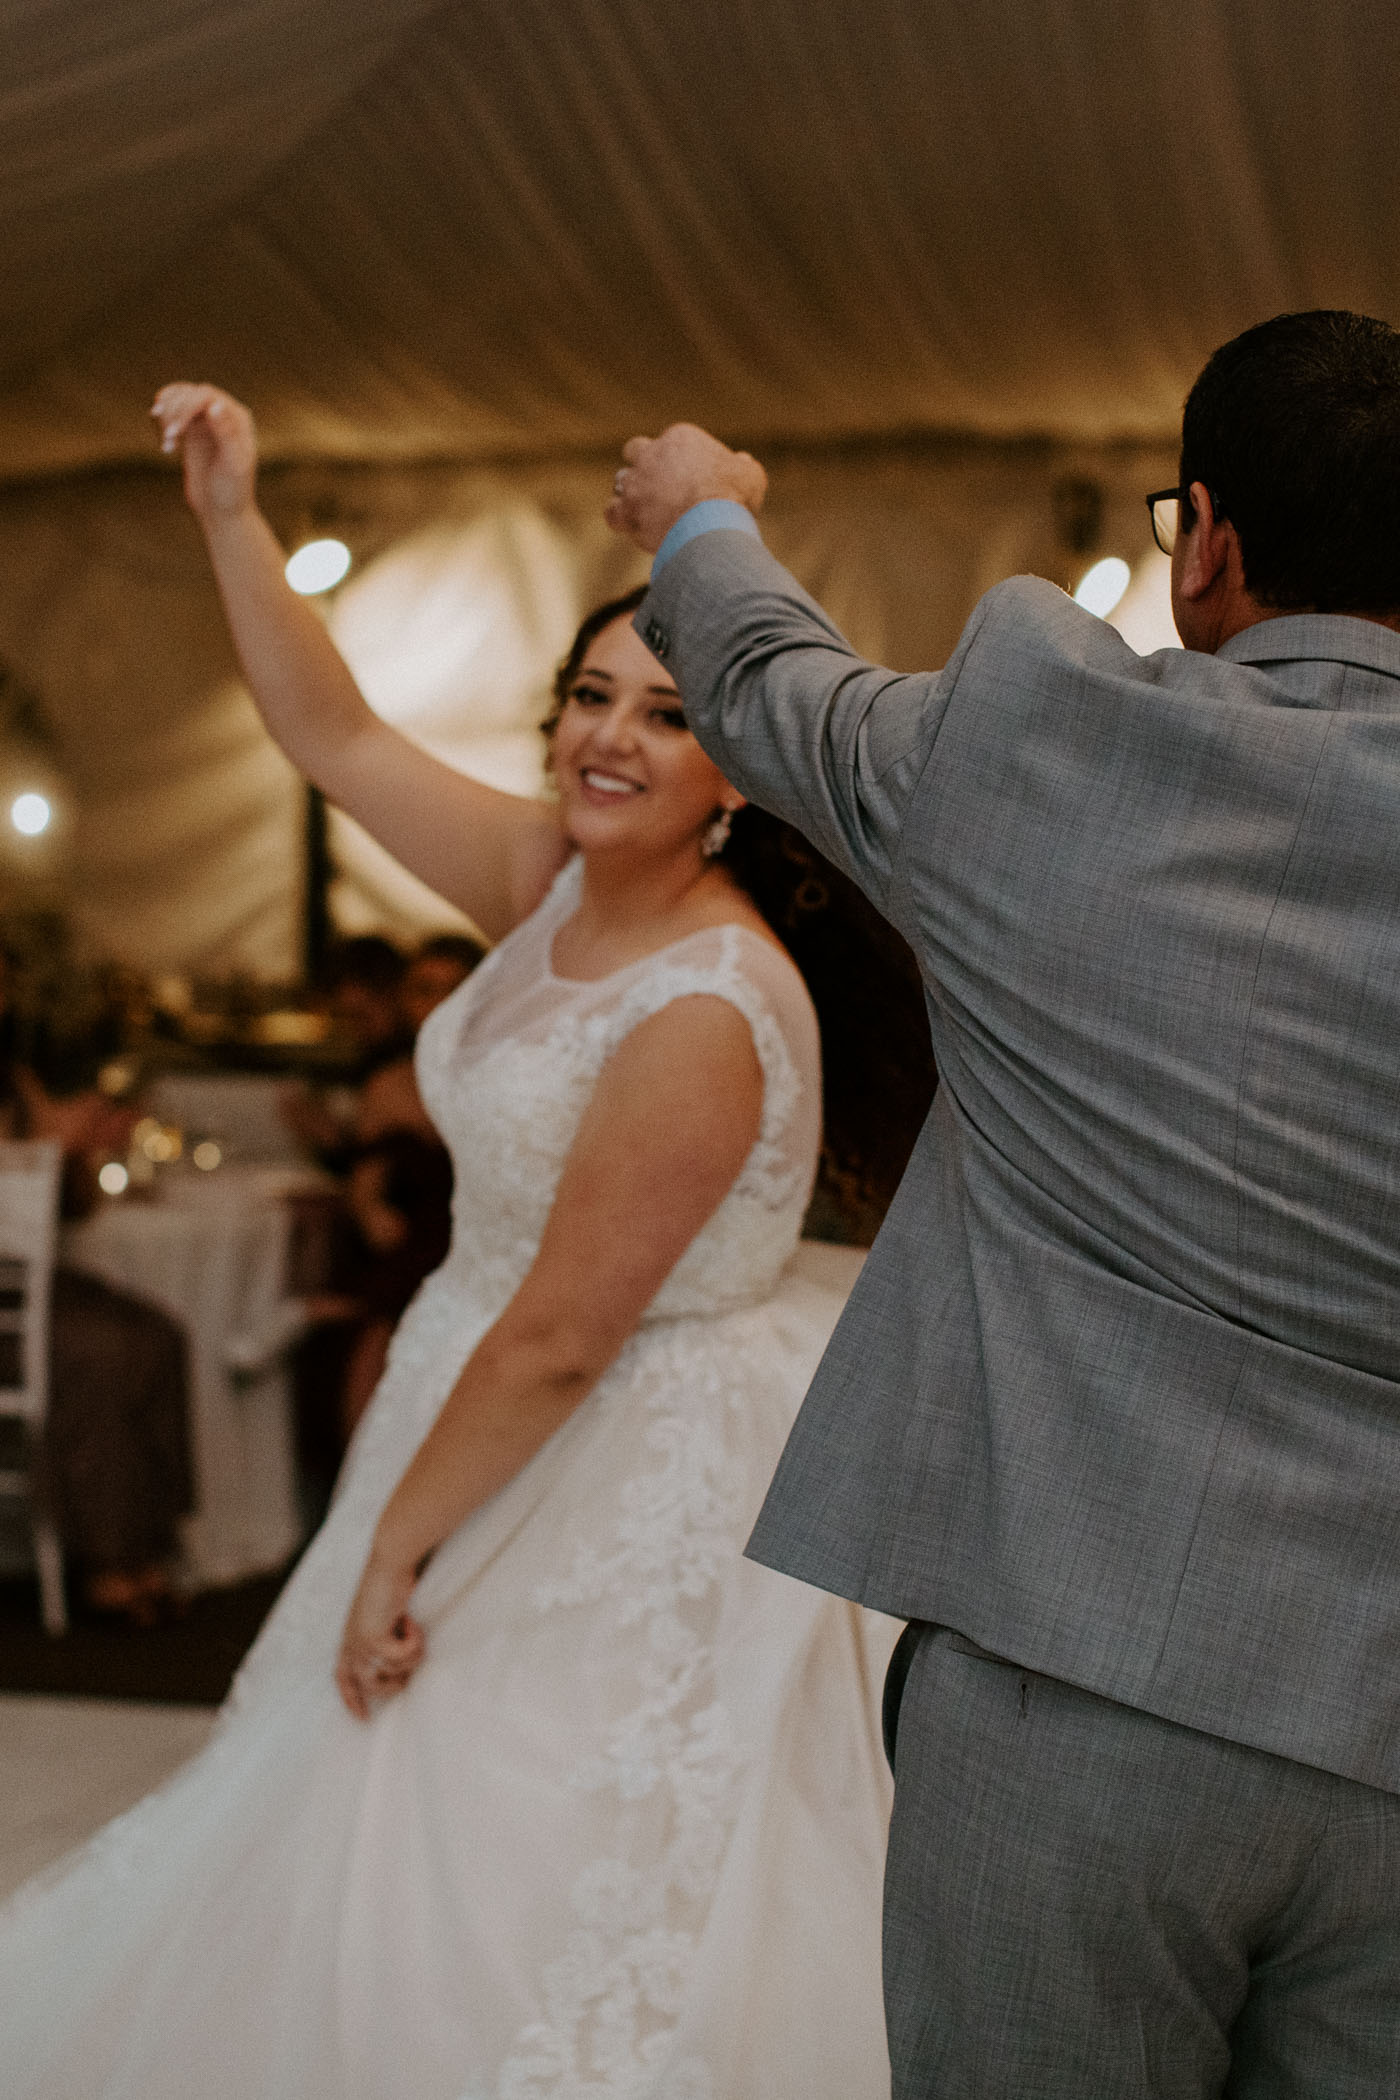 Dad dancing with his daughter on their wedding day